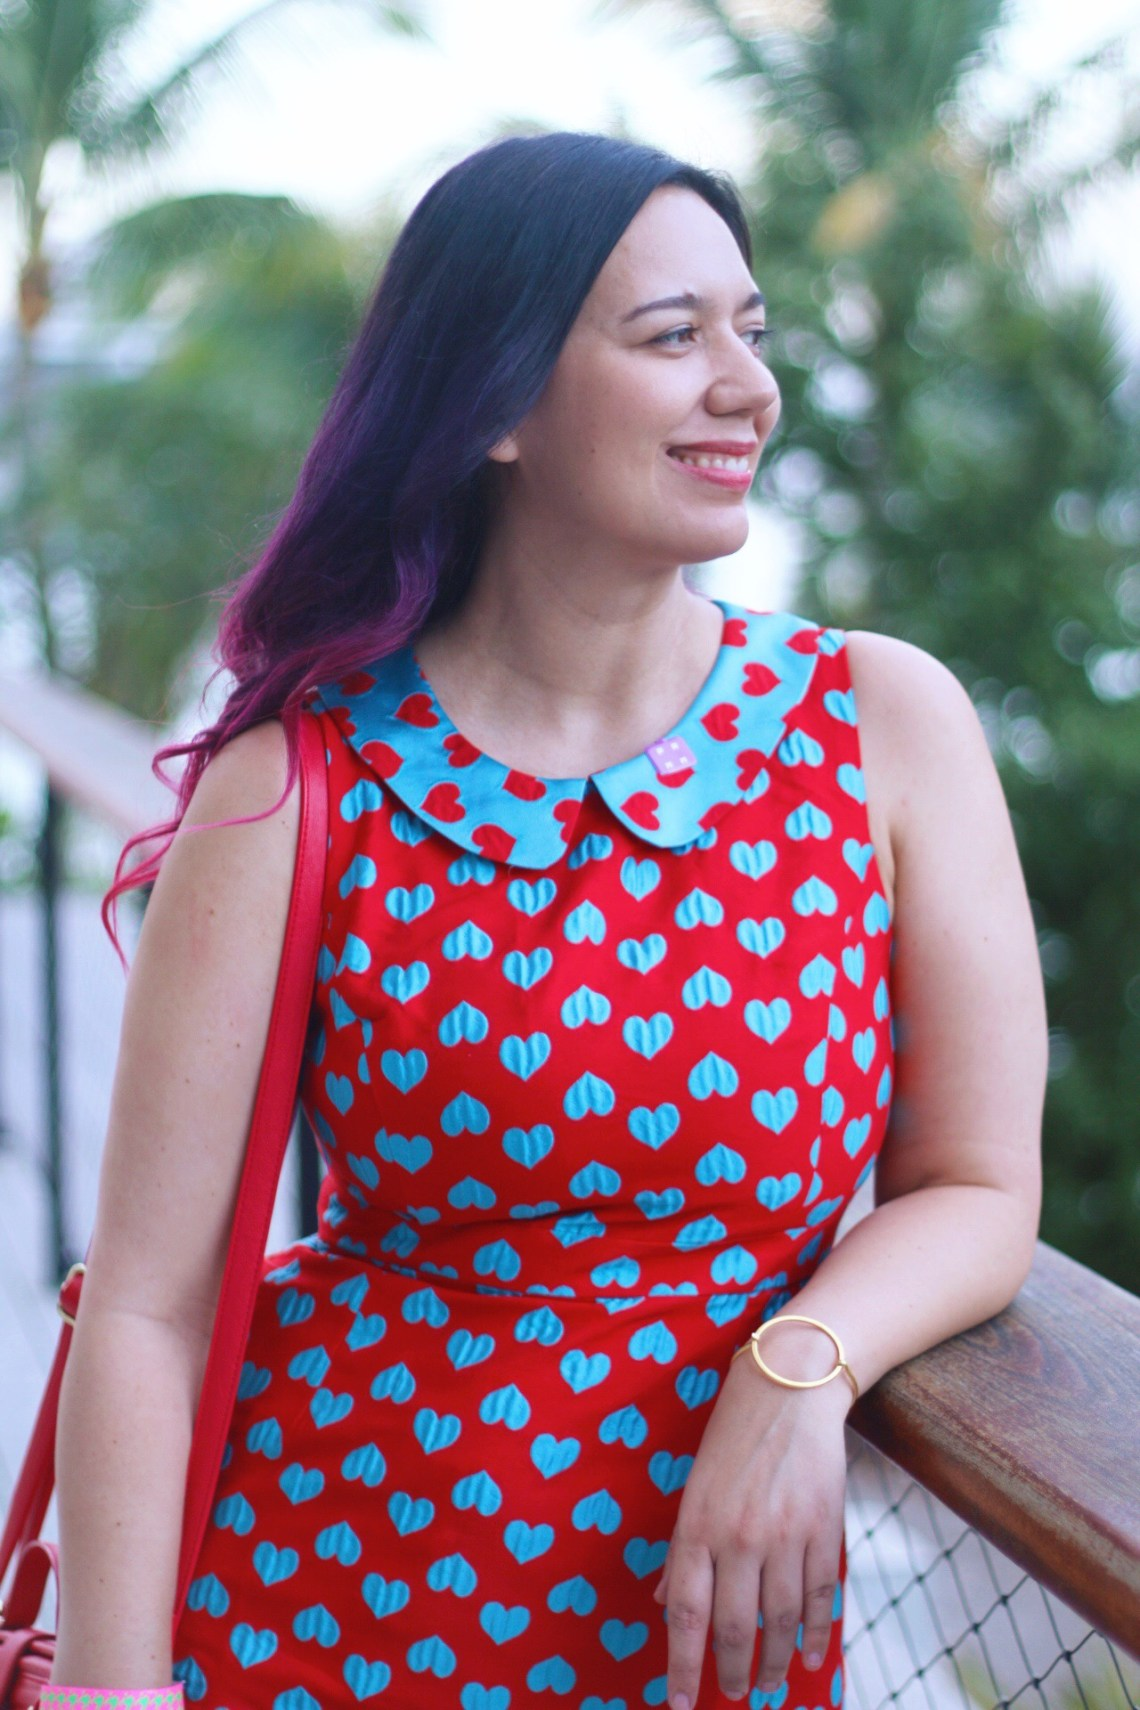 Heart Pattern Peter Pan Collar Dress perfect to wear to a Museum opening event